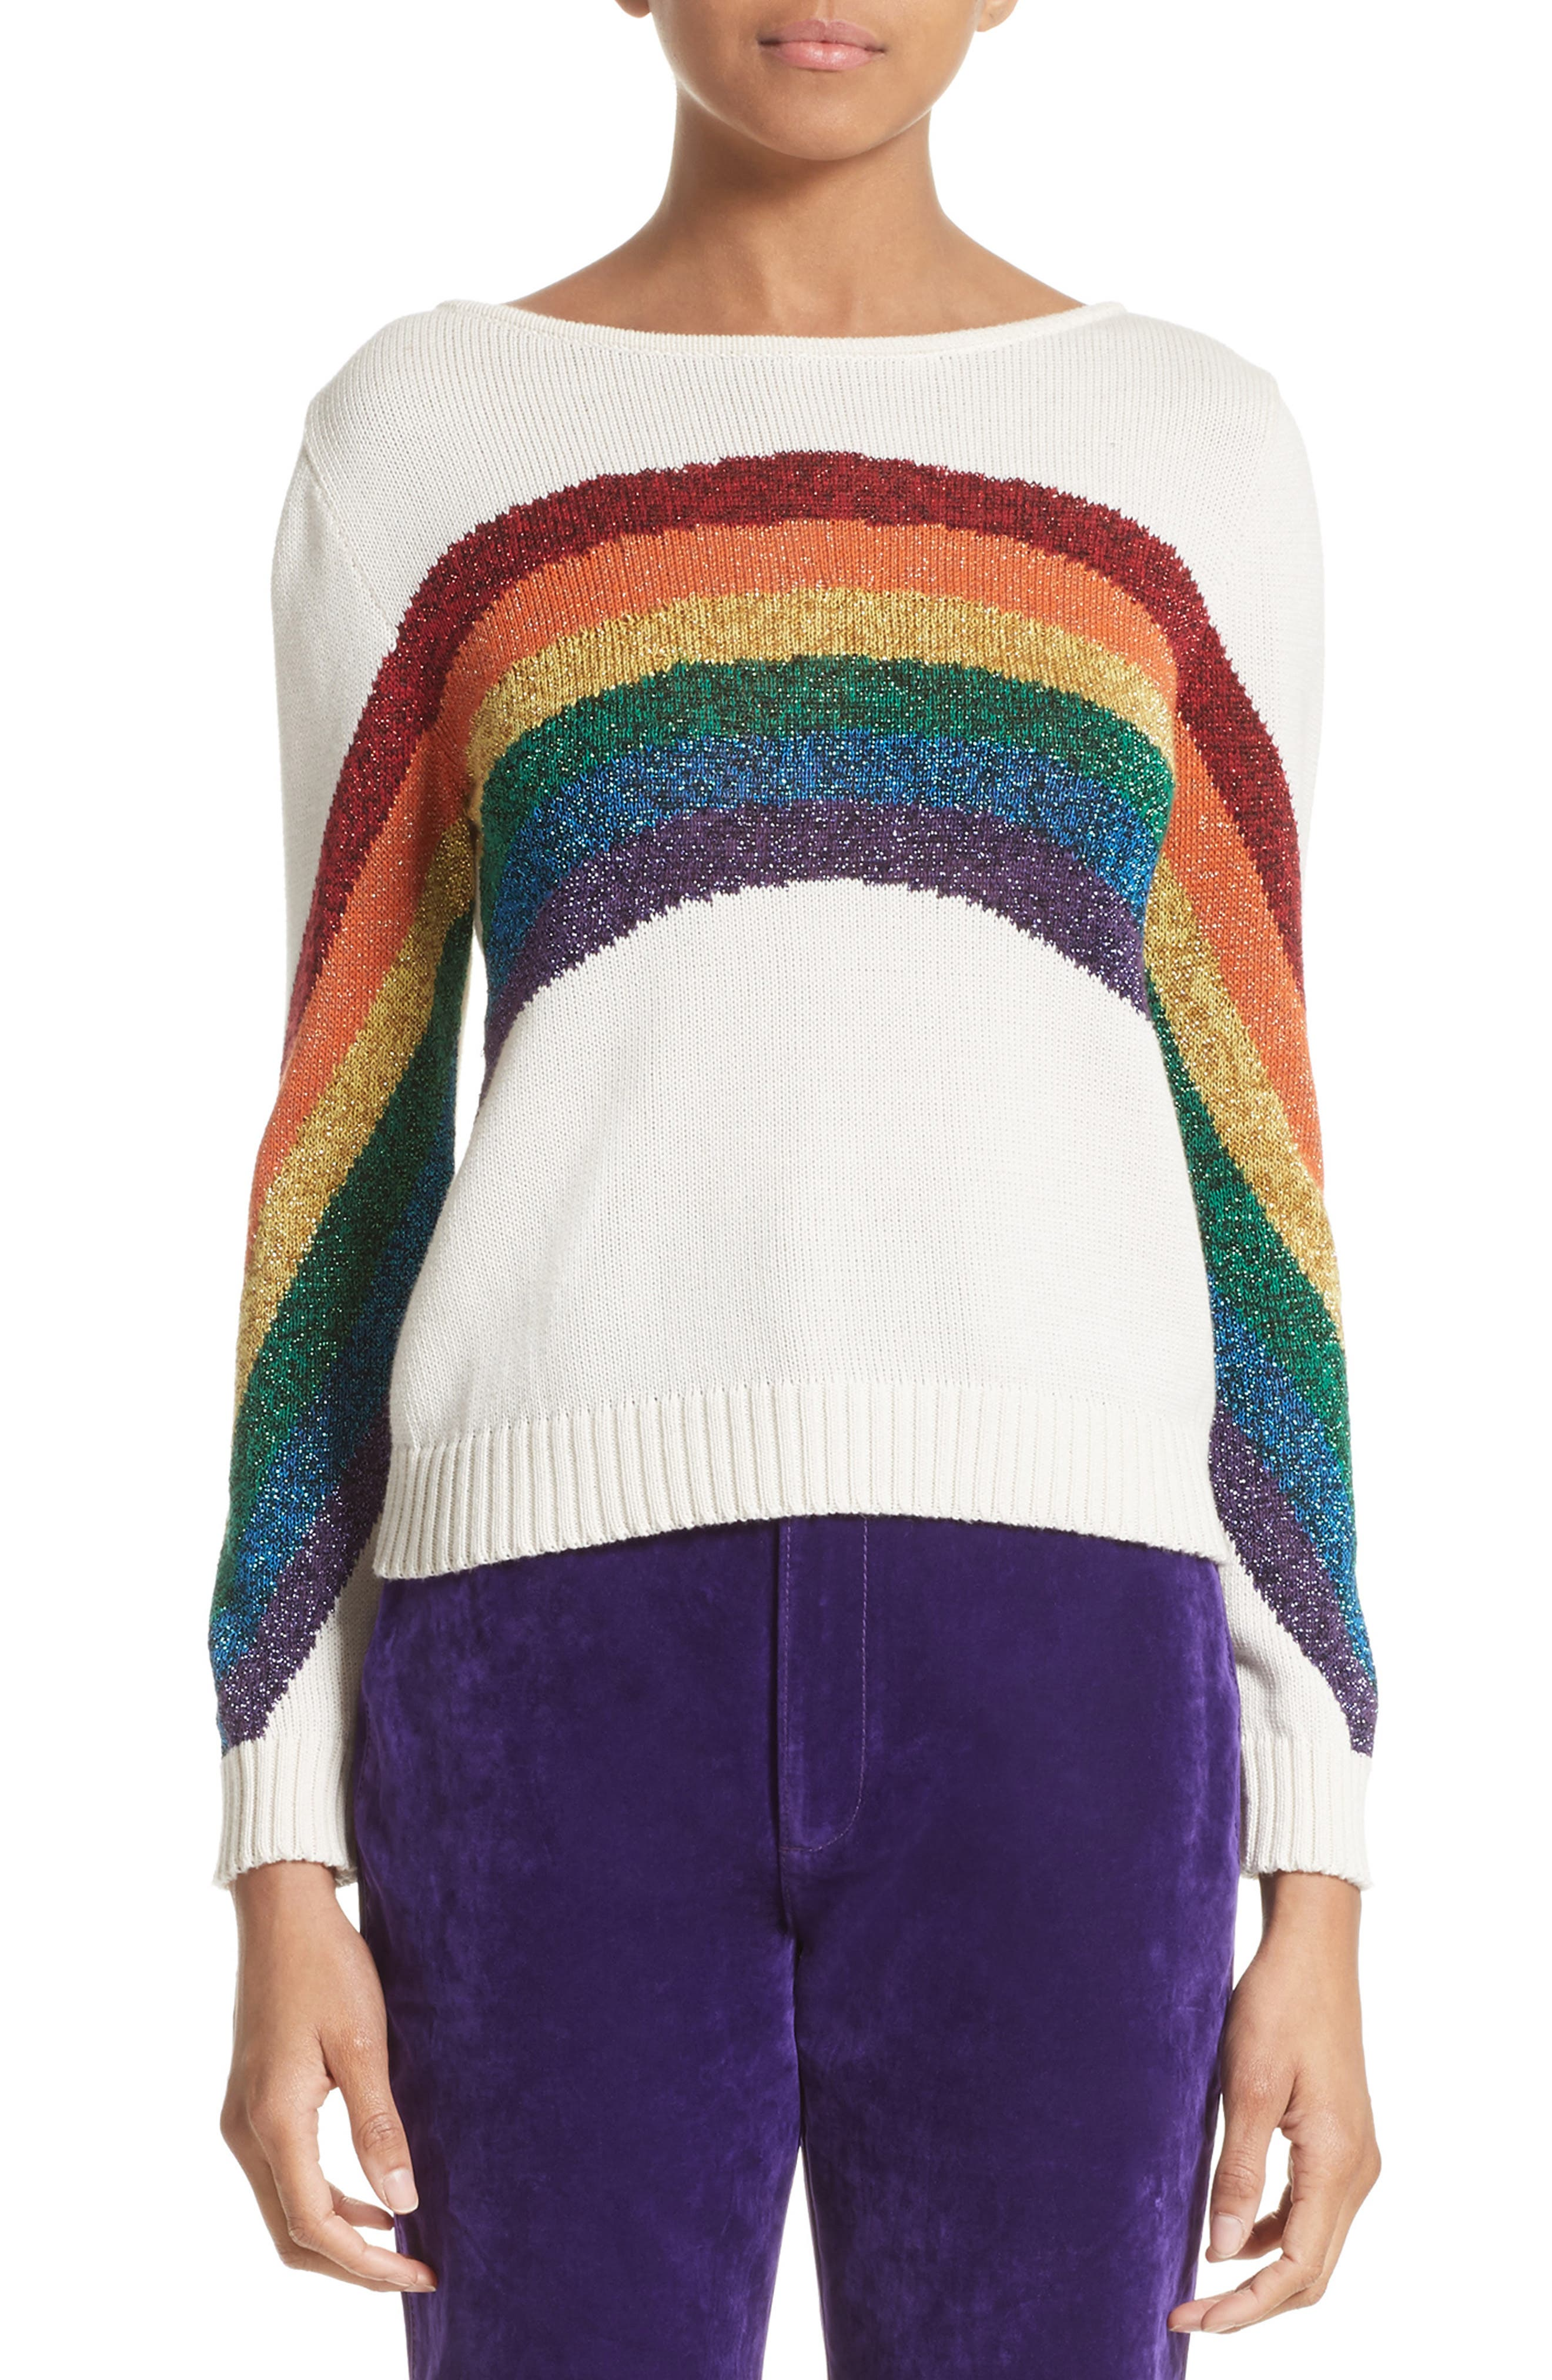 Alternate Image 1 Selected - MARC JACOBS Rainbow Cotton Blend Sweater